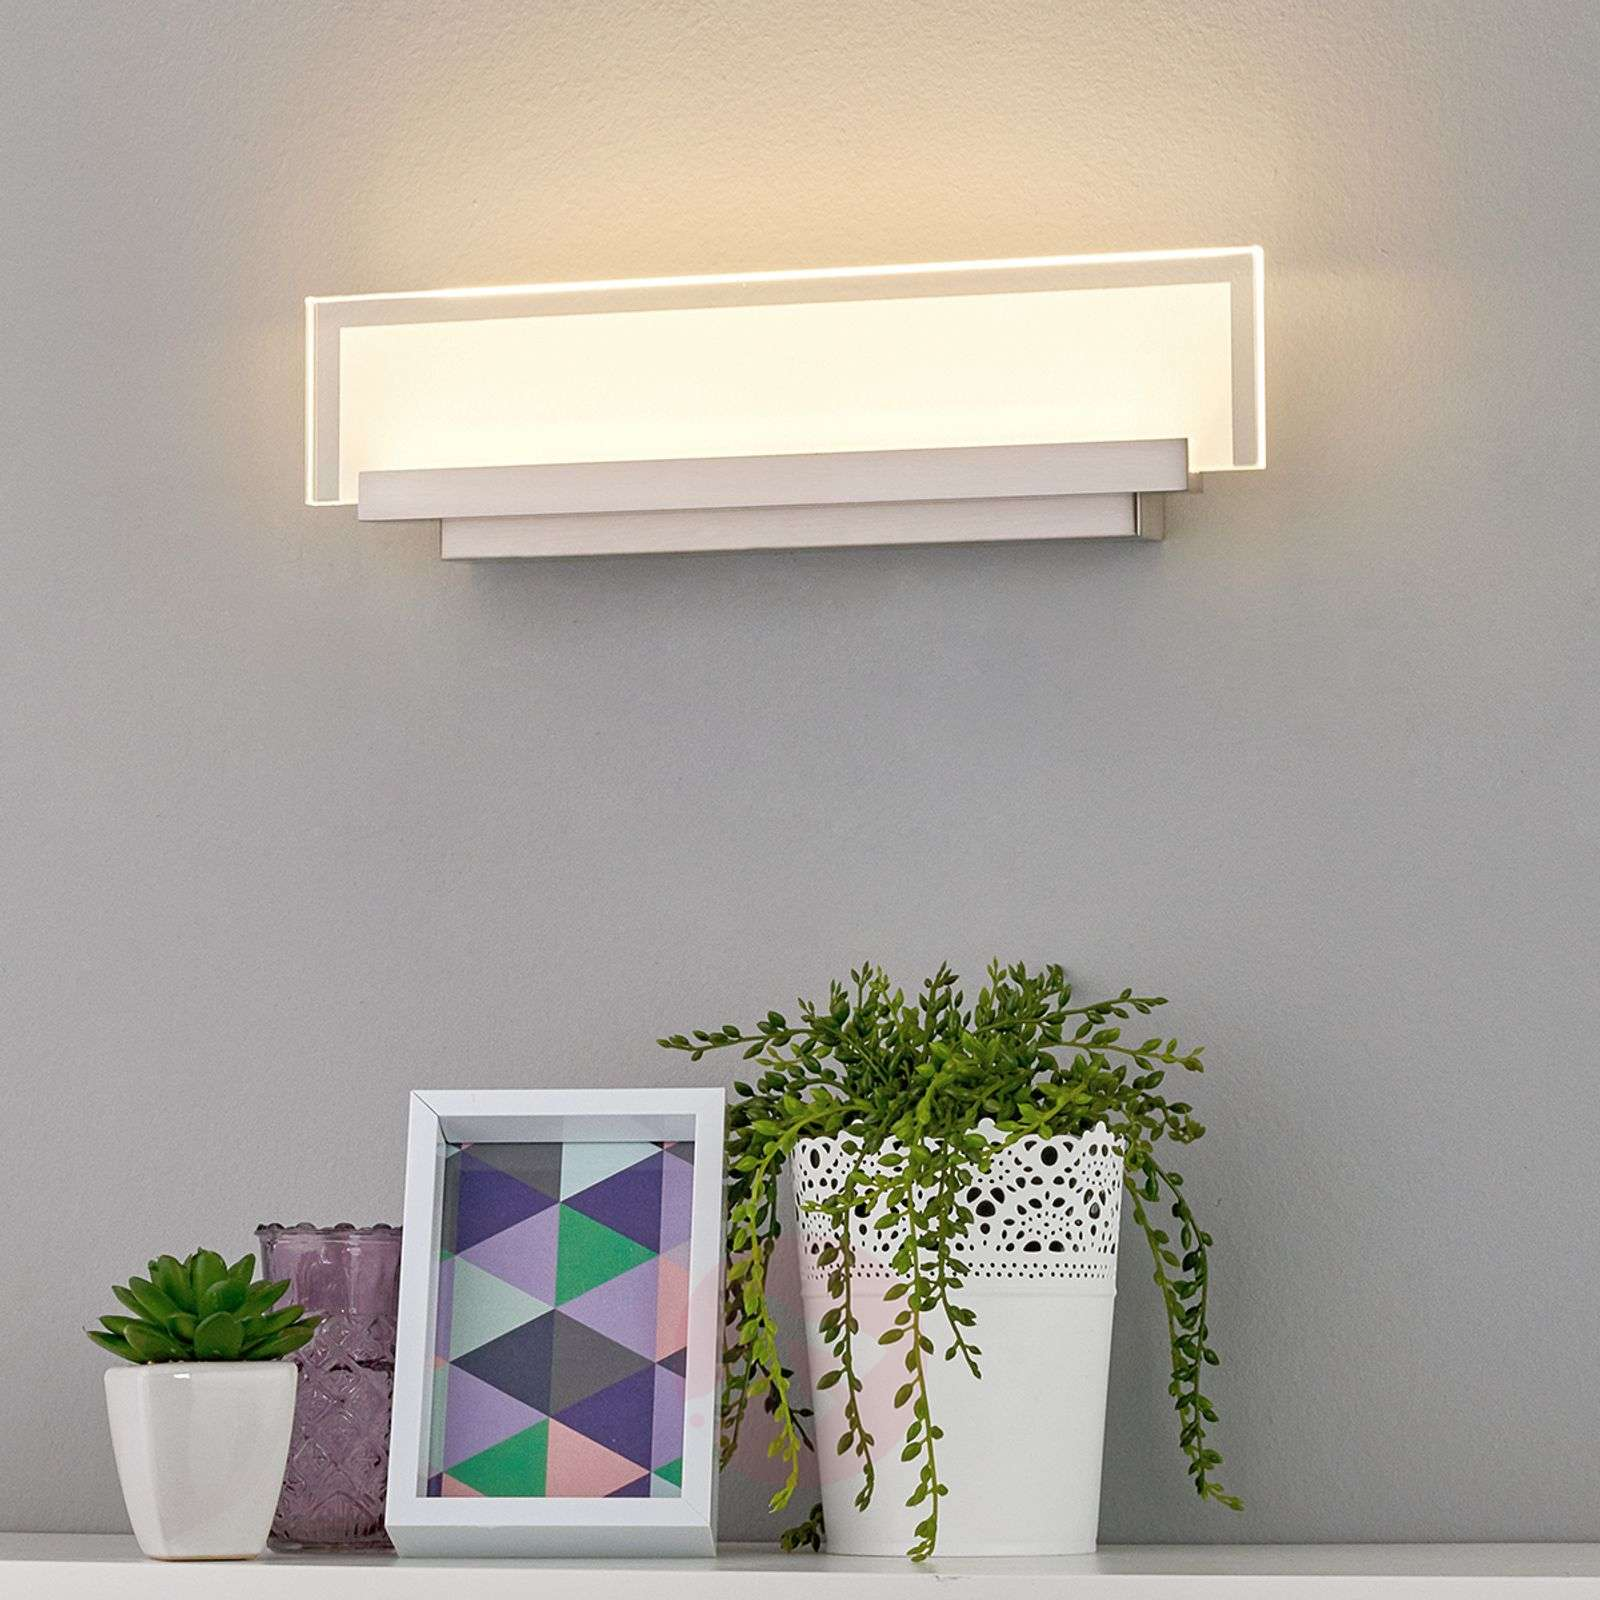 Elegant LED wall light Teja with a glass panel-9644084-01